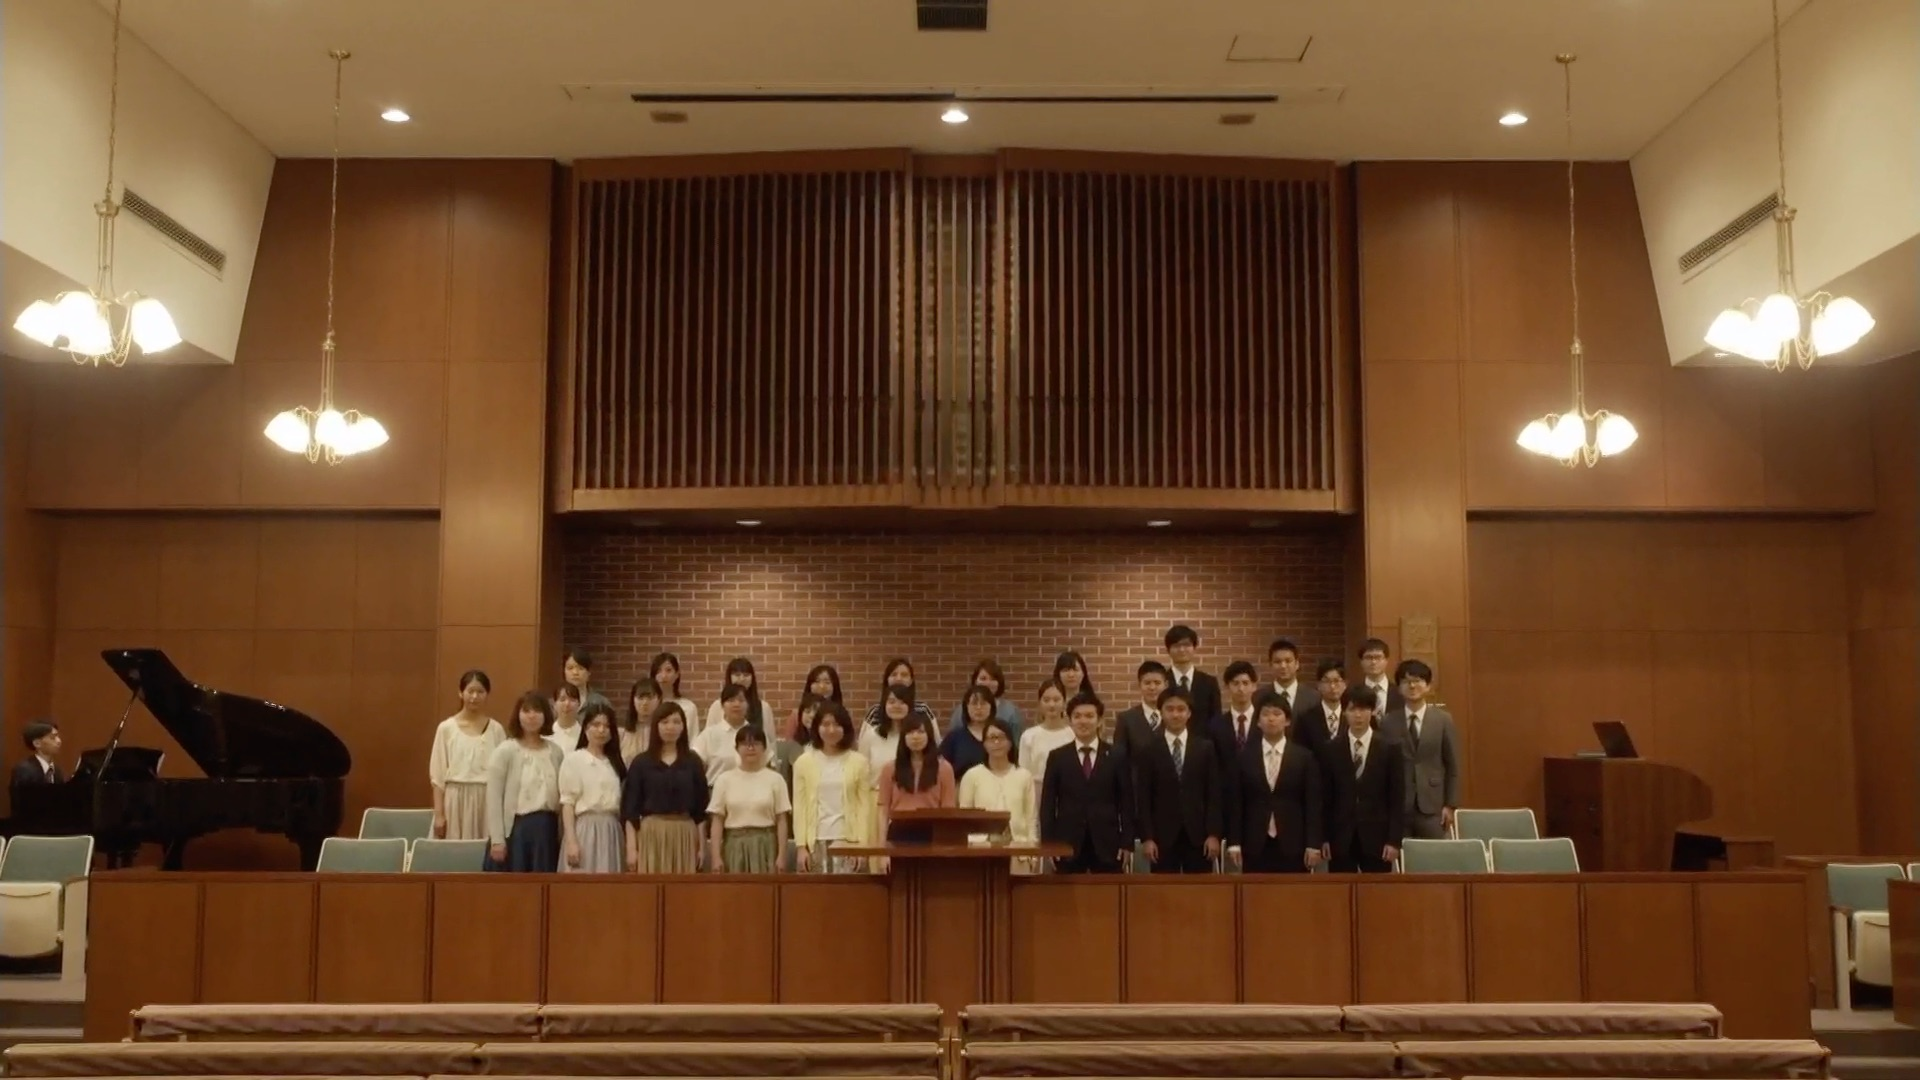 The Tokyo Japan Institute Choir performs via recording during the Seminaries and Institutes Annual Training Broadcast on June 12, 2019.